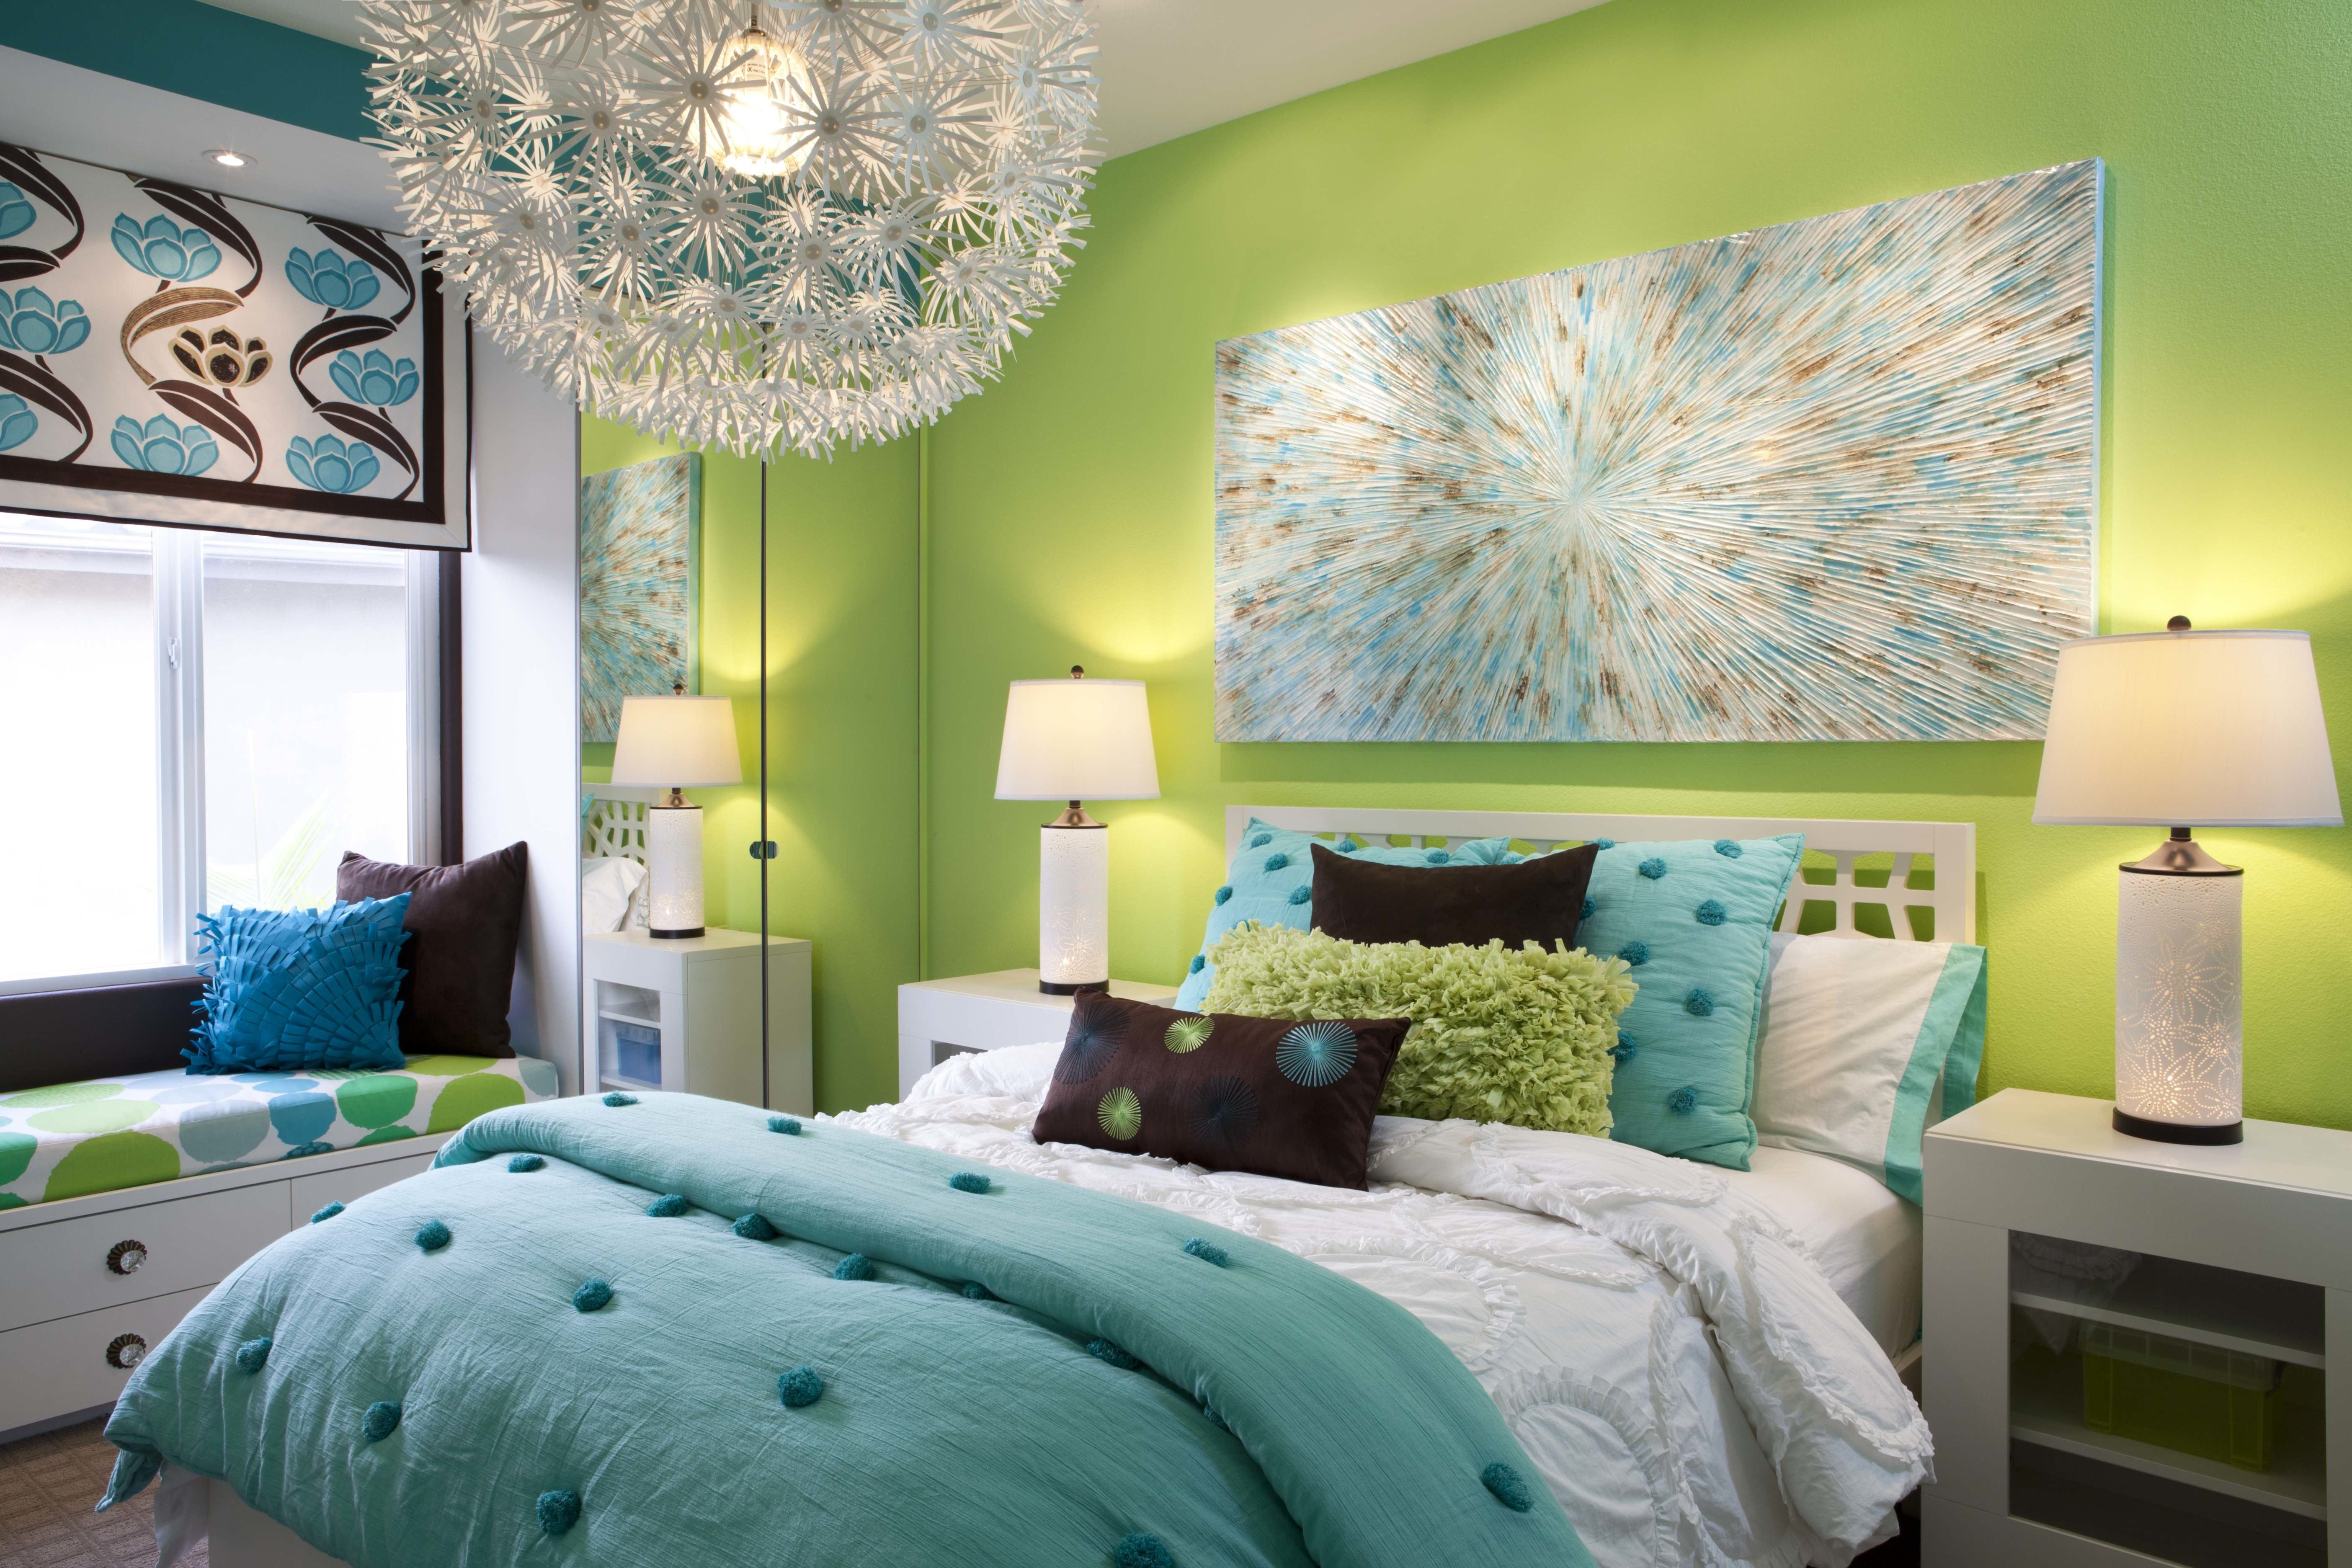 Bright Colors Lime Green And Turquoise Girls Room With Ikea Chandelier Girl Bedroom Designs Kids Bedroom Wall Decor Girl Room